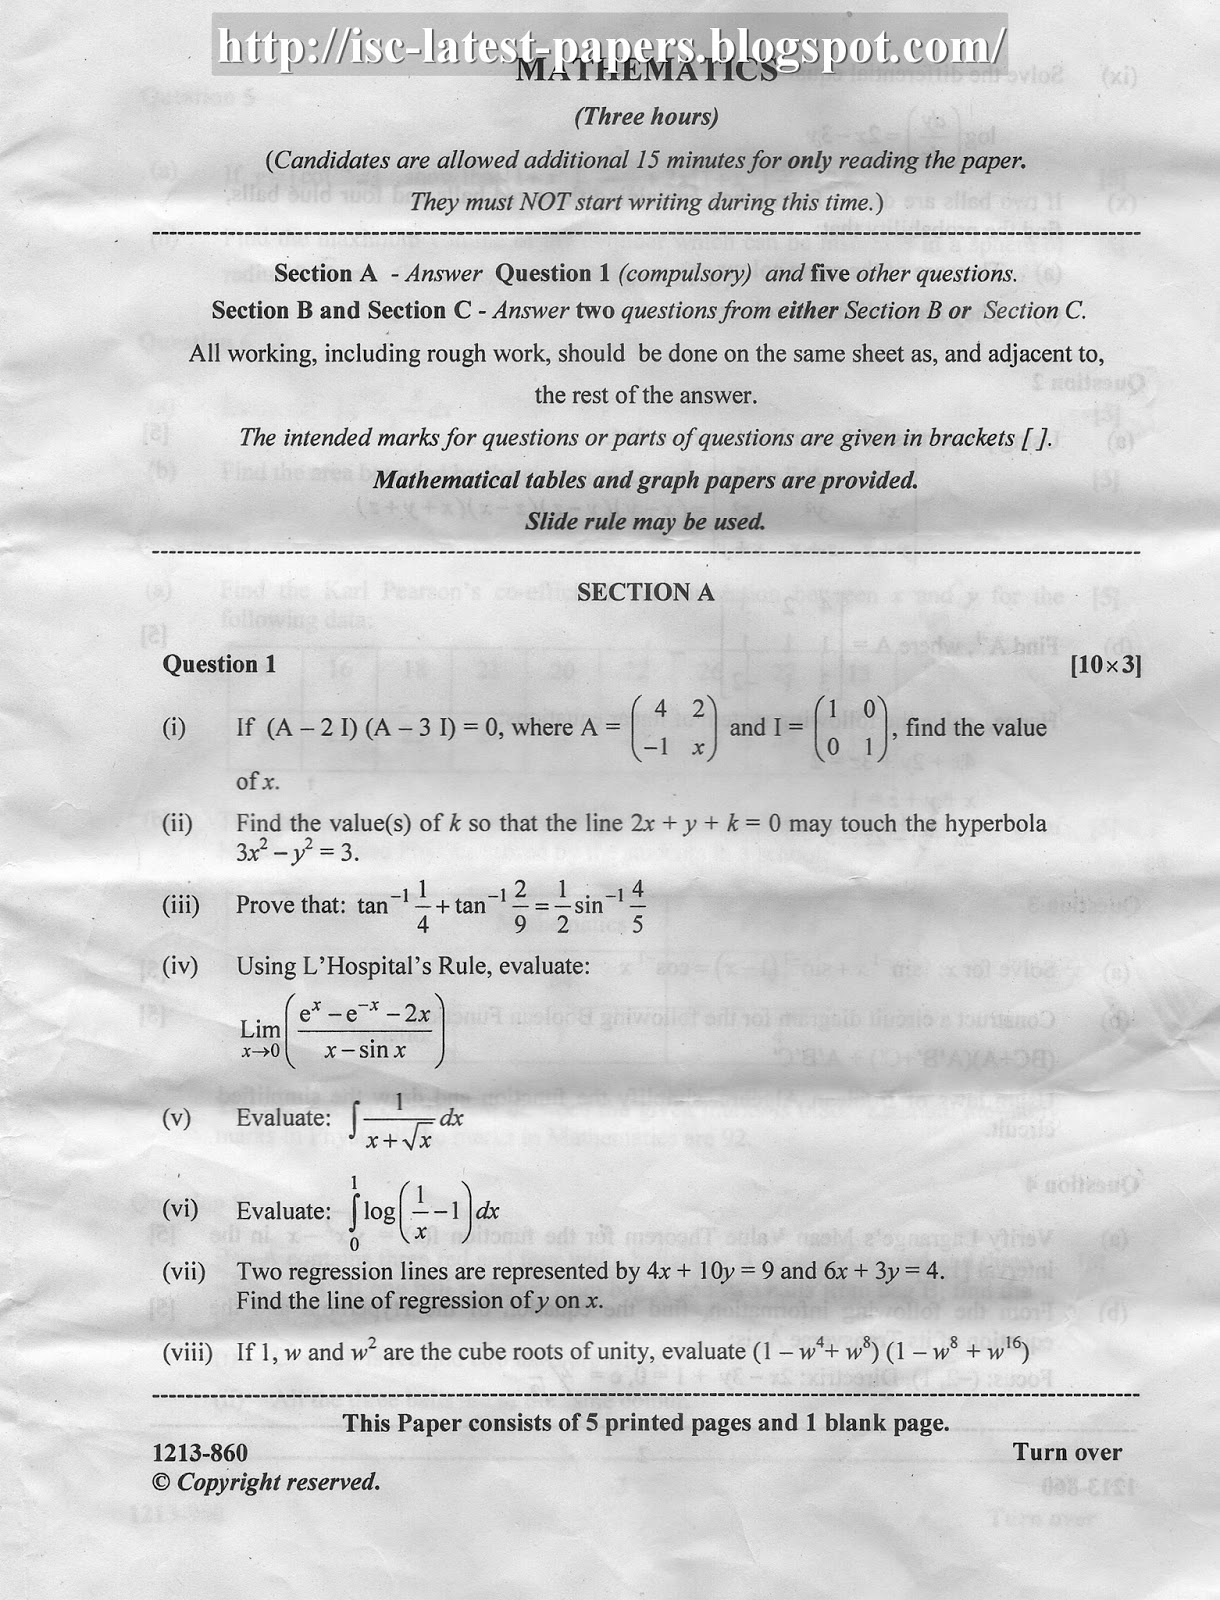 CIE – A Level Mathematics Paper 1 (9709) – Pure Mathematics 1 past papers